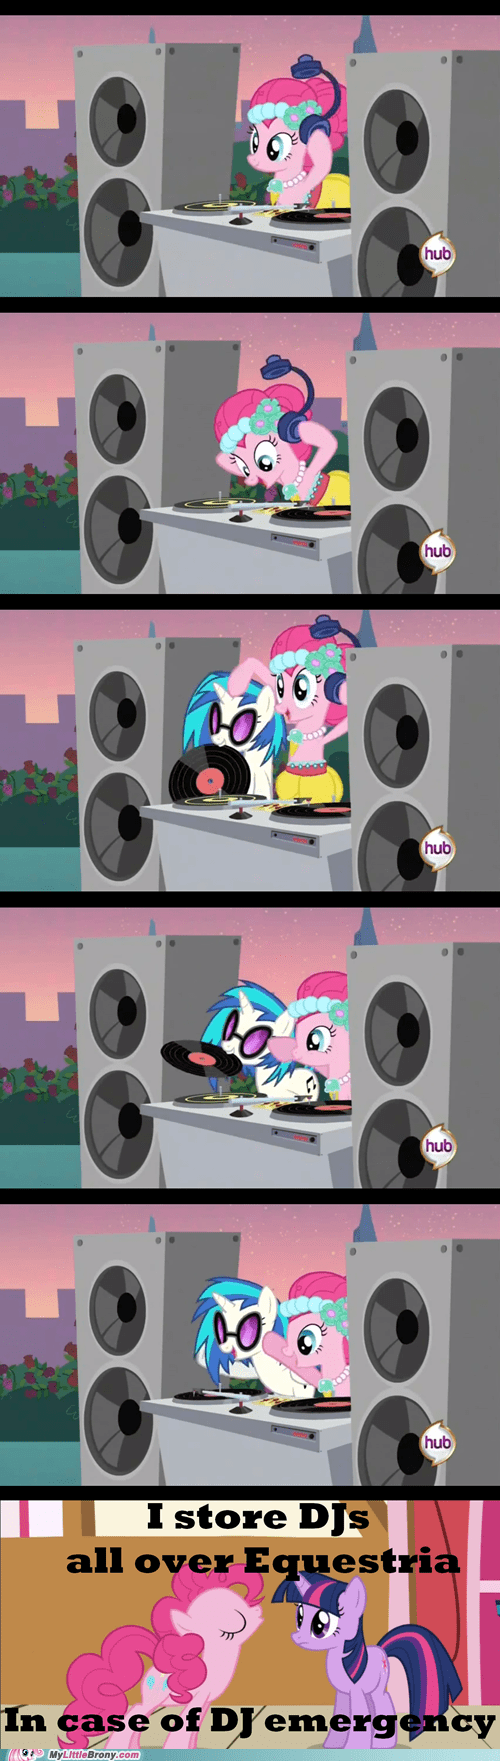 comics dj PON-3 emergency ending Music pinkie pie season 2 - 6155175168